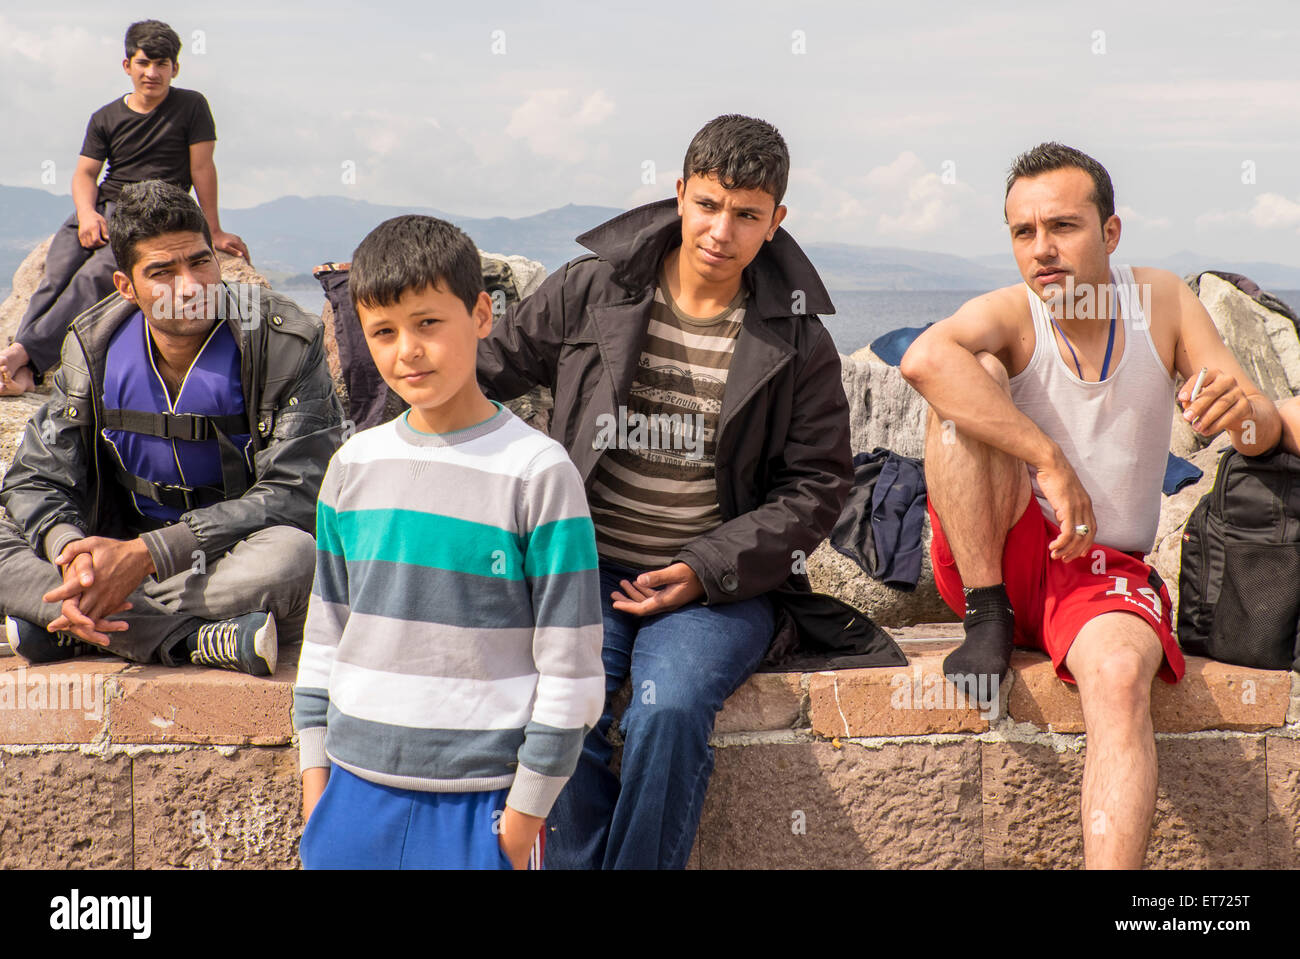 Five Syrian refugees dry off in Molyvos harbor after crossing from Turkey to Greece in rubber rafts. Stock Photo